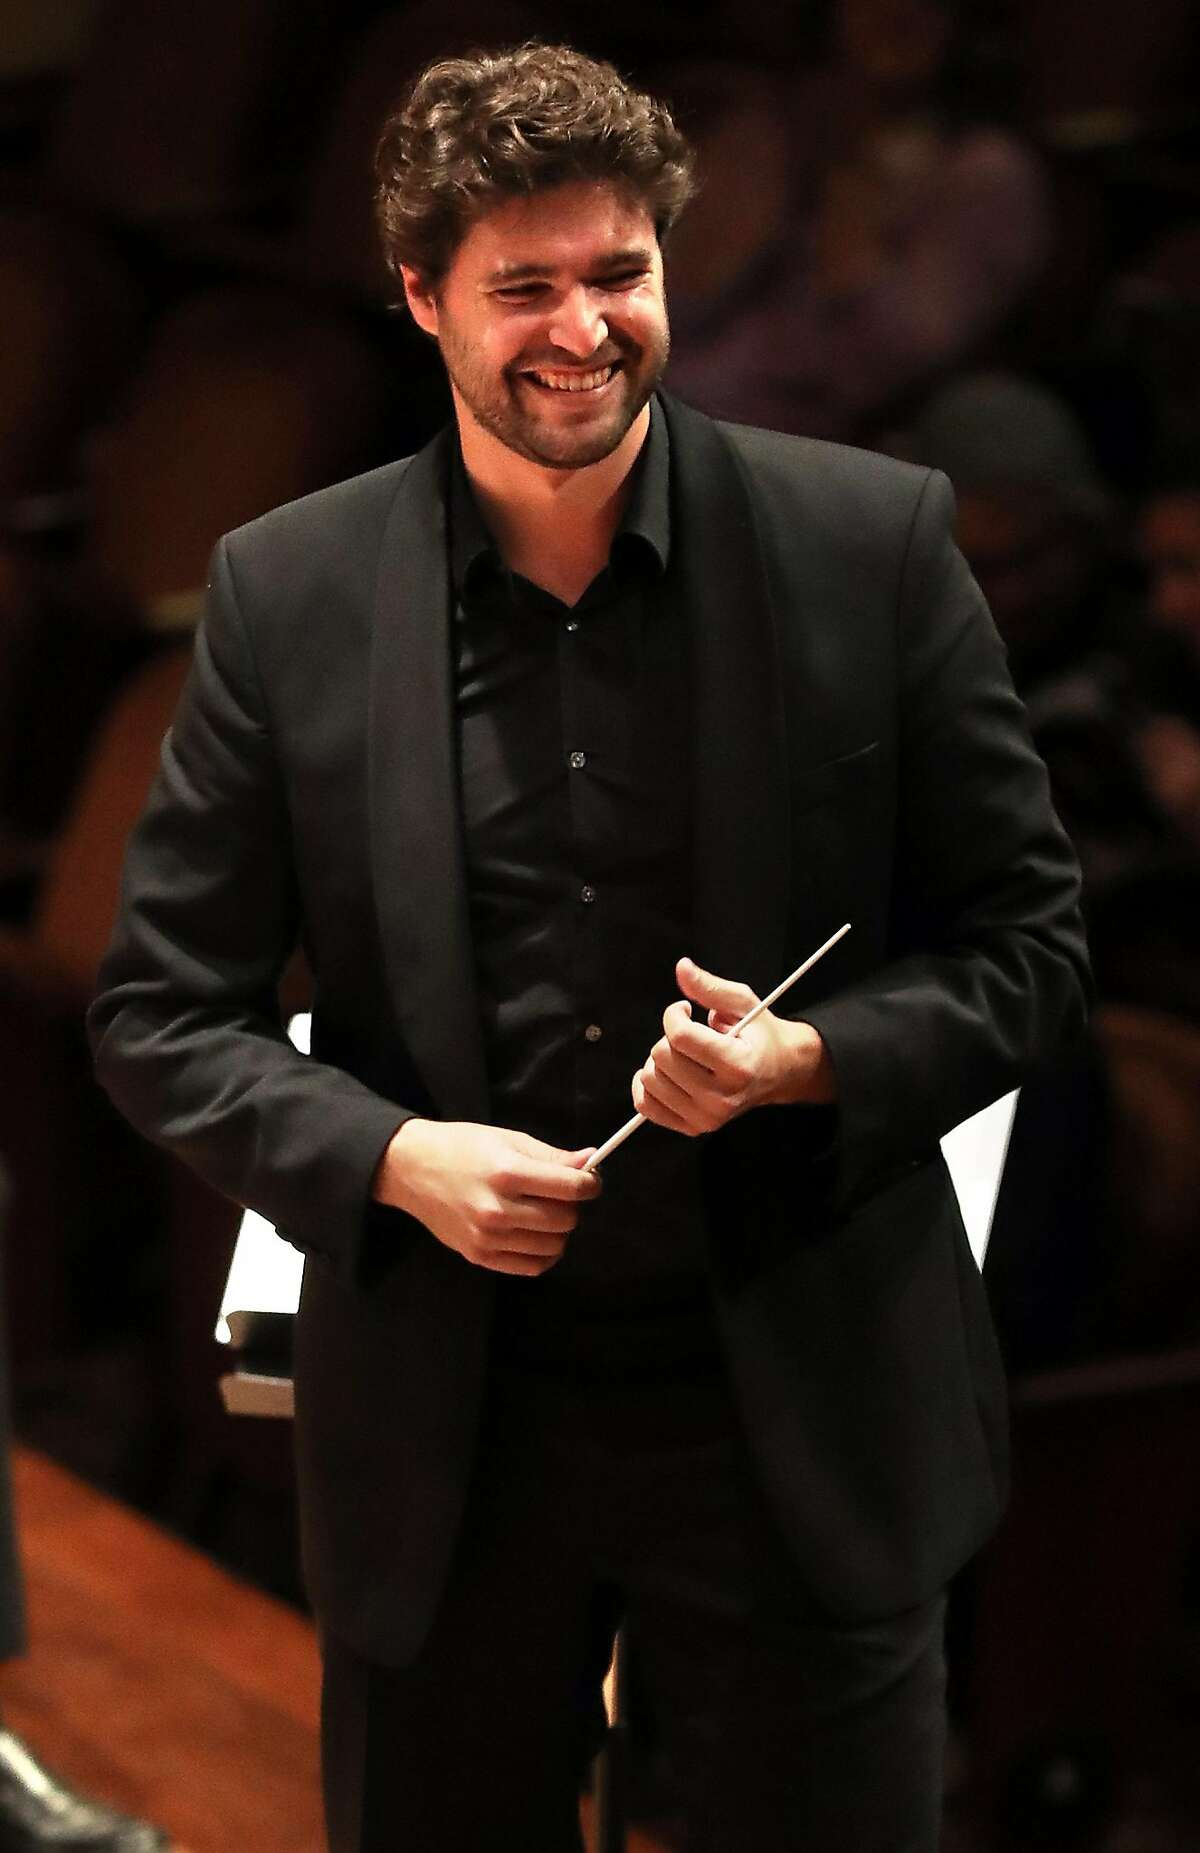 San Francisco Symphony Resident Conductor Christian Reif during Oktoberfest concert at Davies Symphony Hall in San Francisco, Calif., on Tuesday, October 3, 2017.